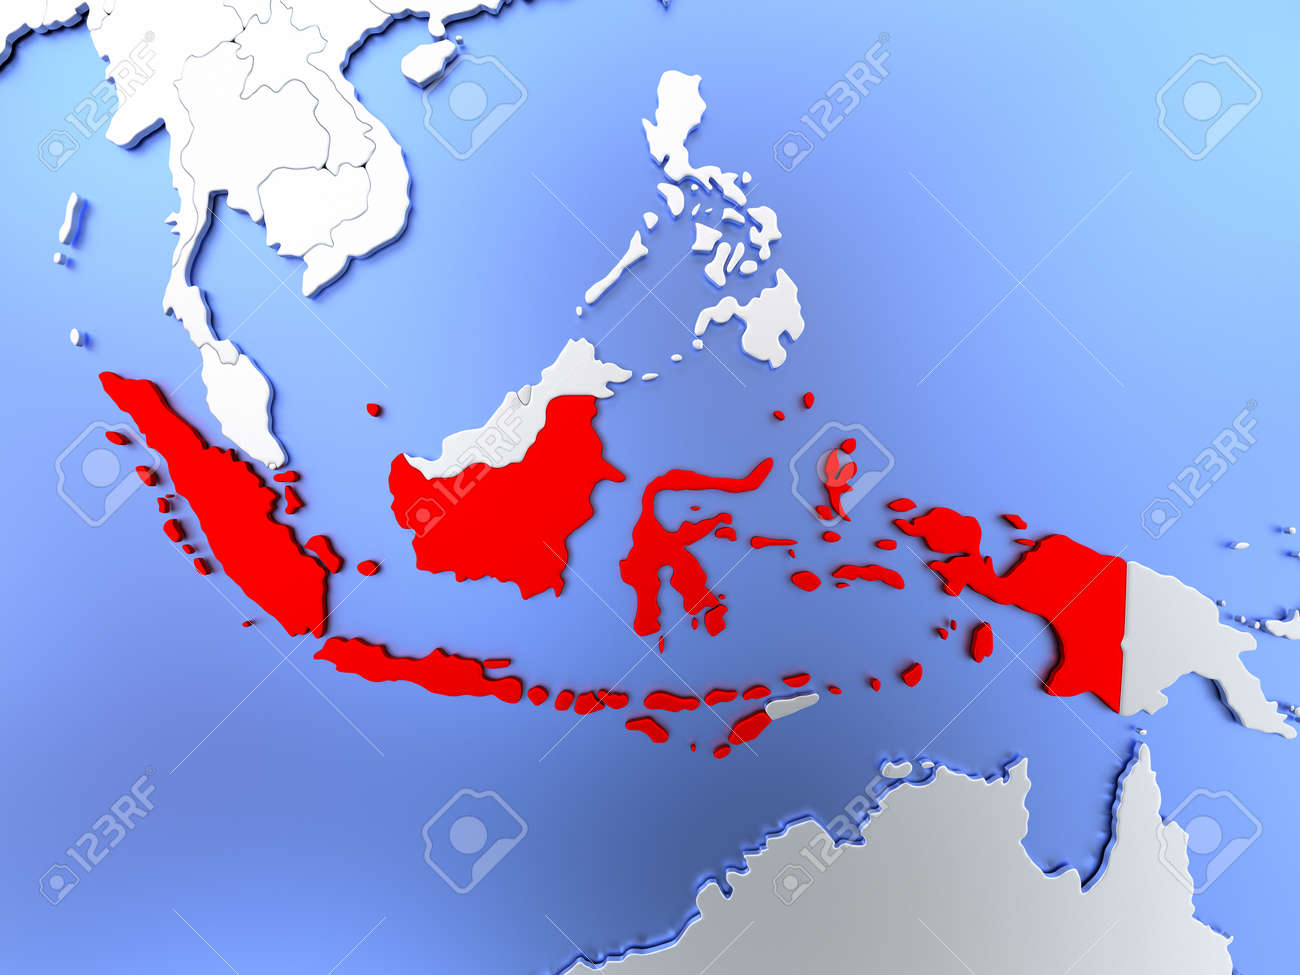 Map of indonesia highlighted in red on simple shiny metallic stock map of indonesia highlighted in red on simple shiny metallic map with clear country borders gumiabroncs Images